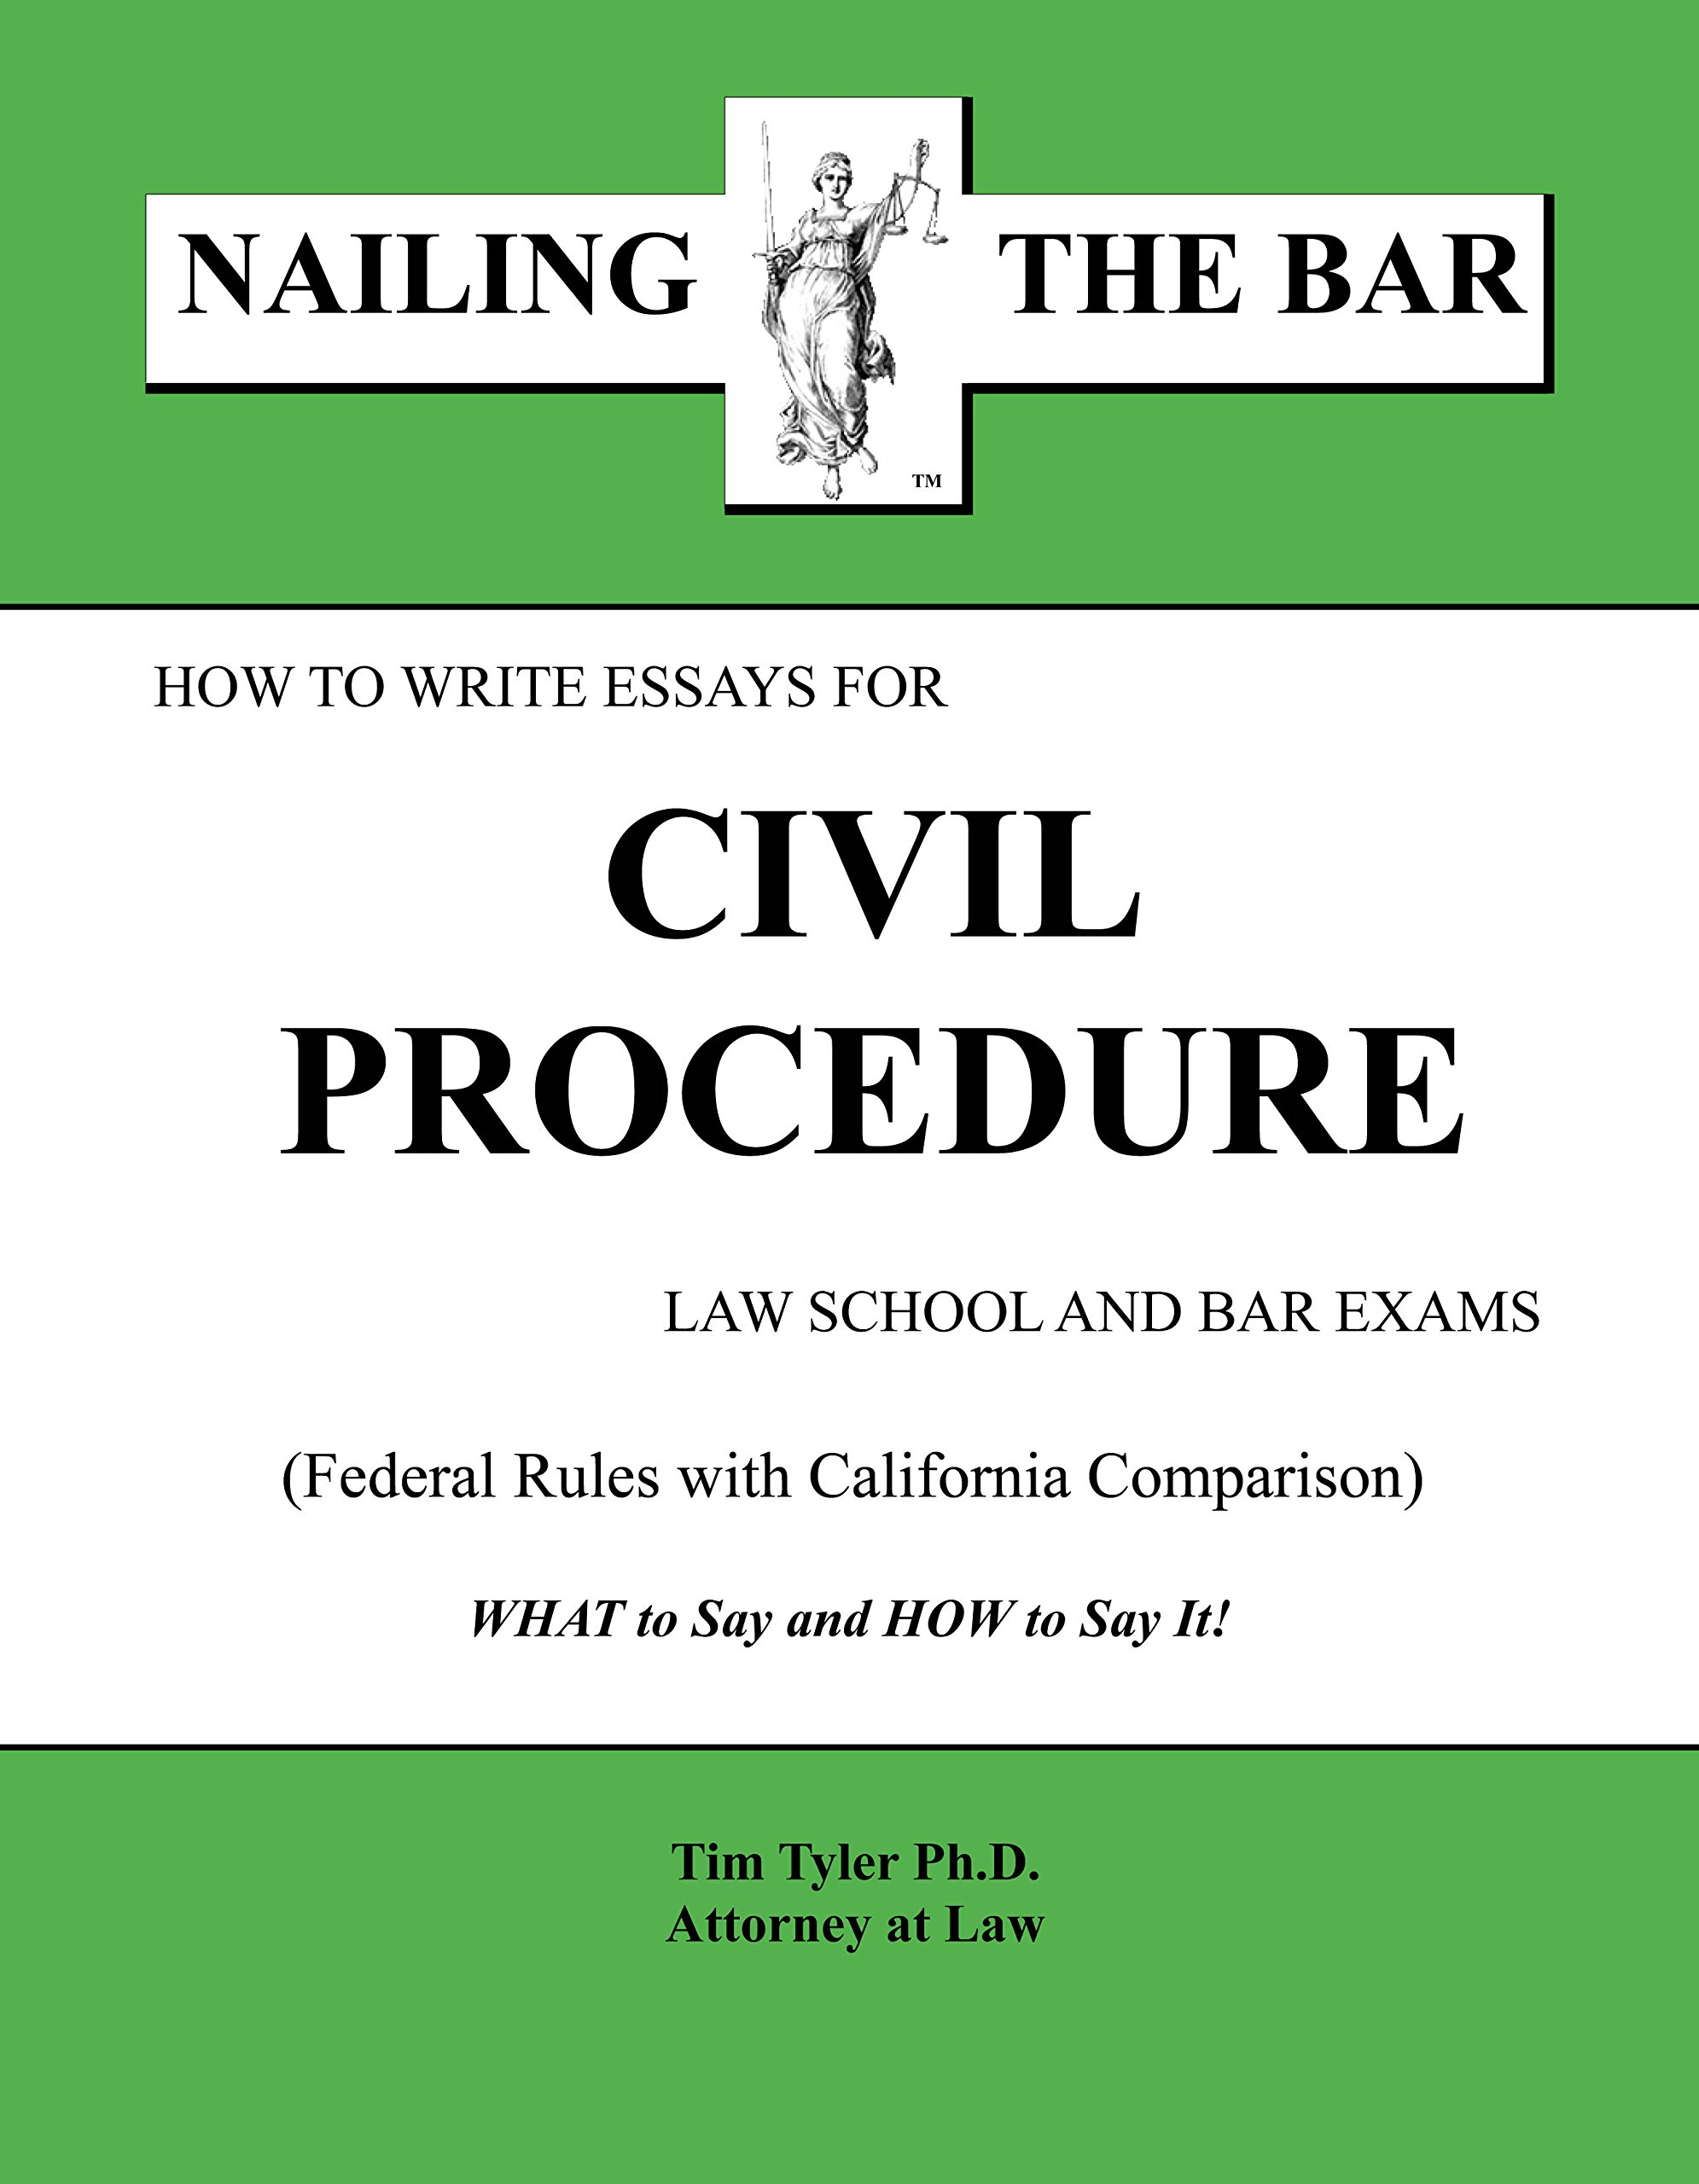 Download How to Write Essays for Civil Procedure Law School and Bar Exams ebook